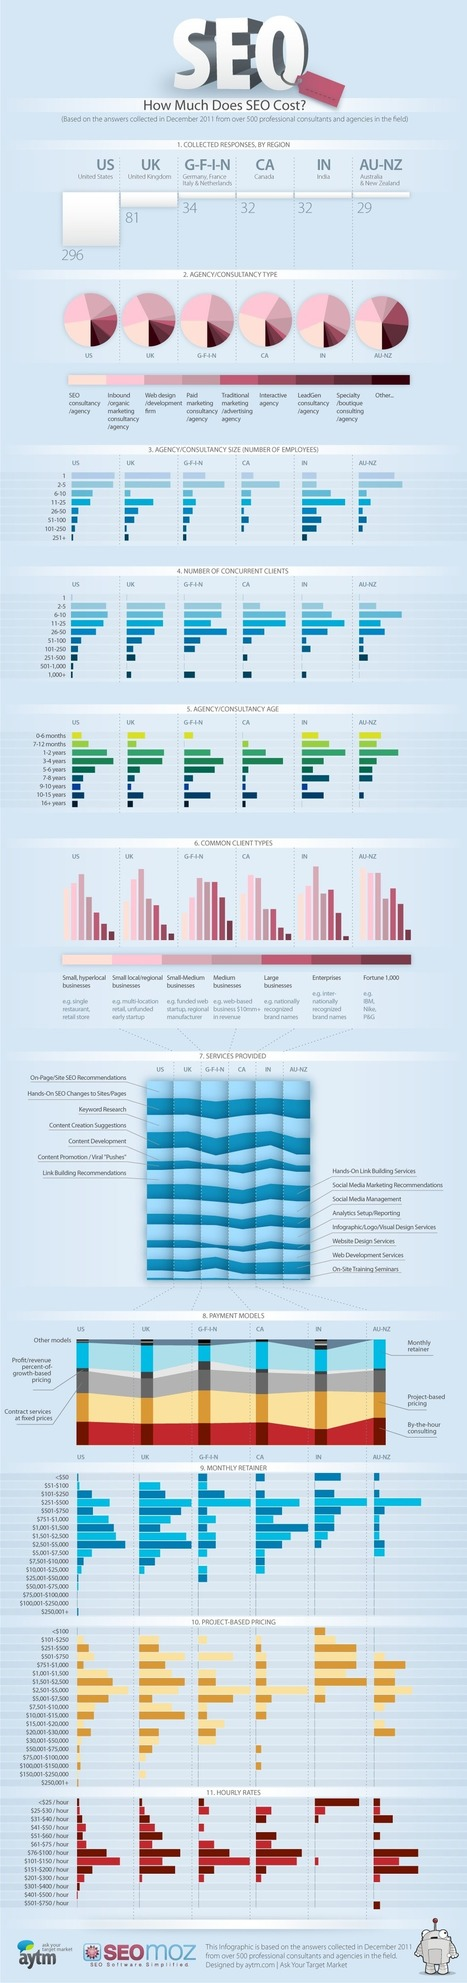 What Does SEO Cost? [Infographic] - Forbes | #TheMarketingAutomationAlert | SEO | Scoop.it